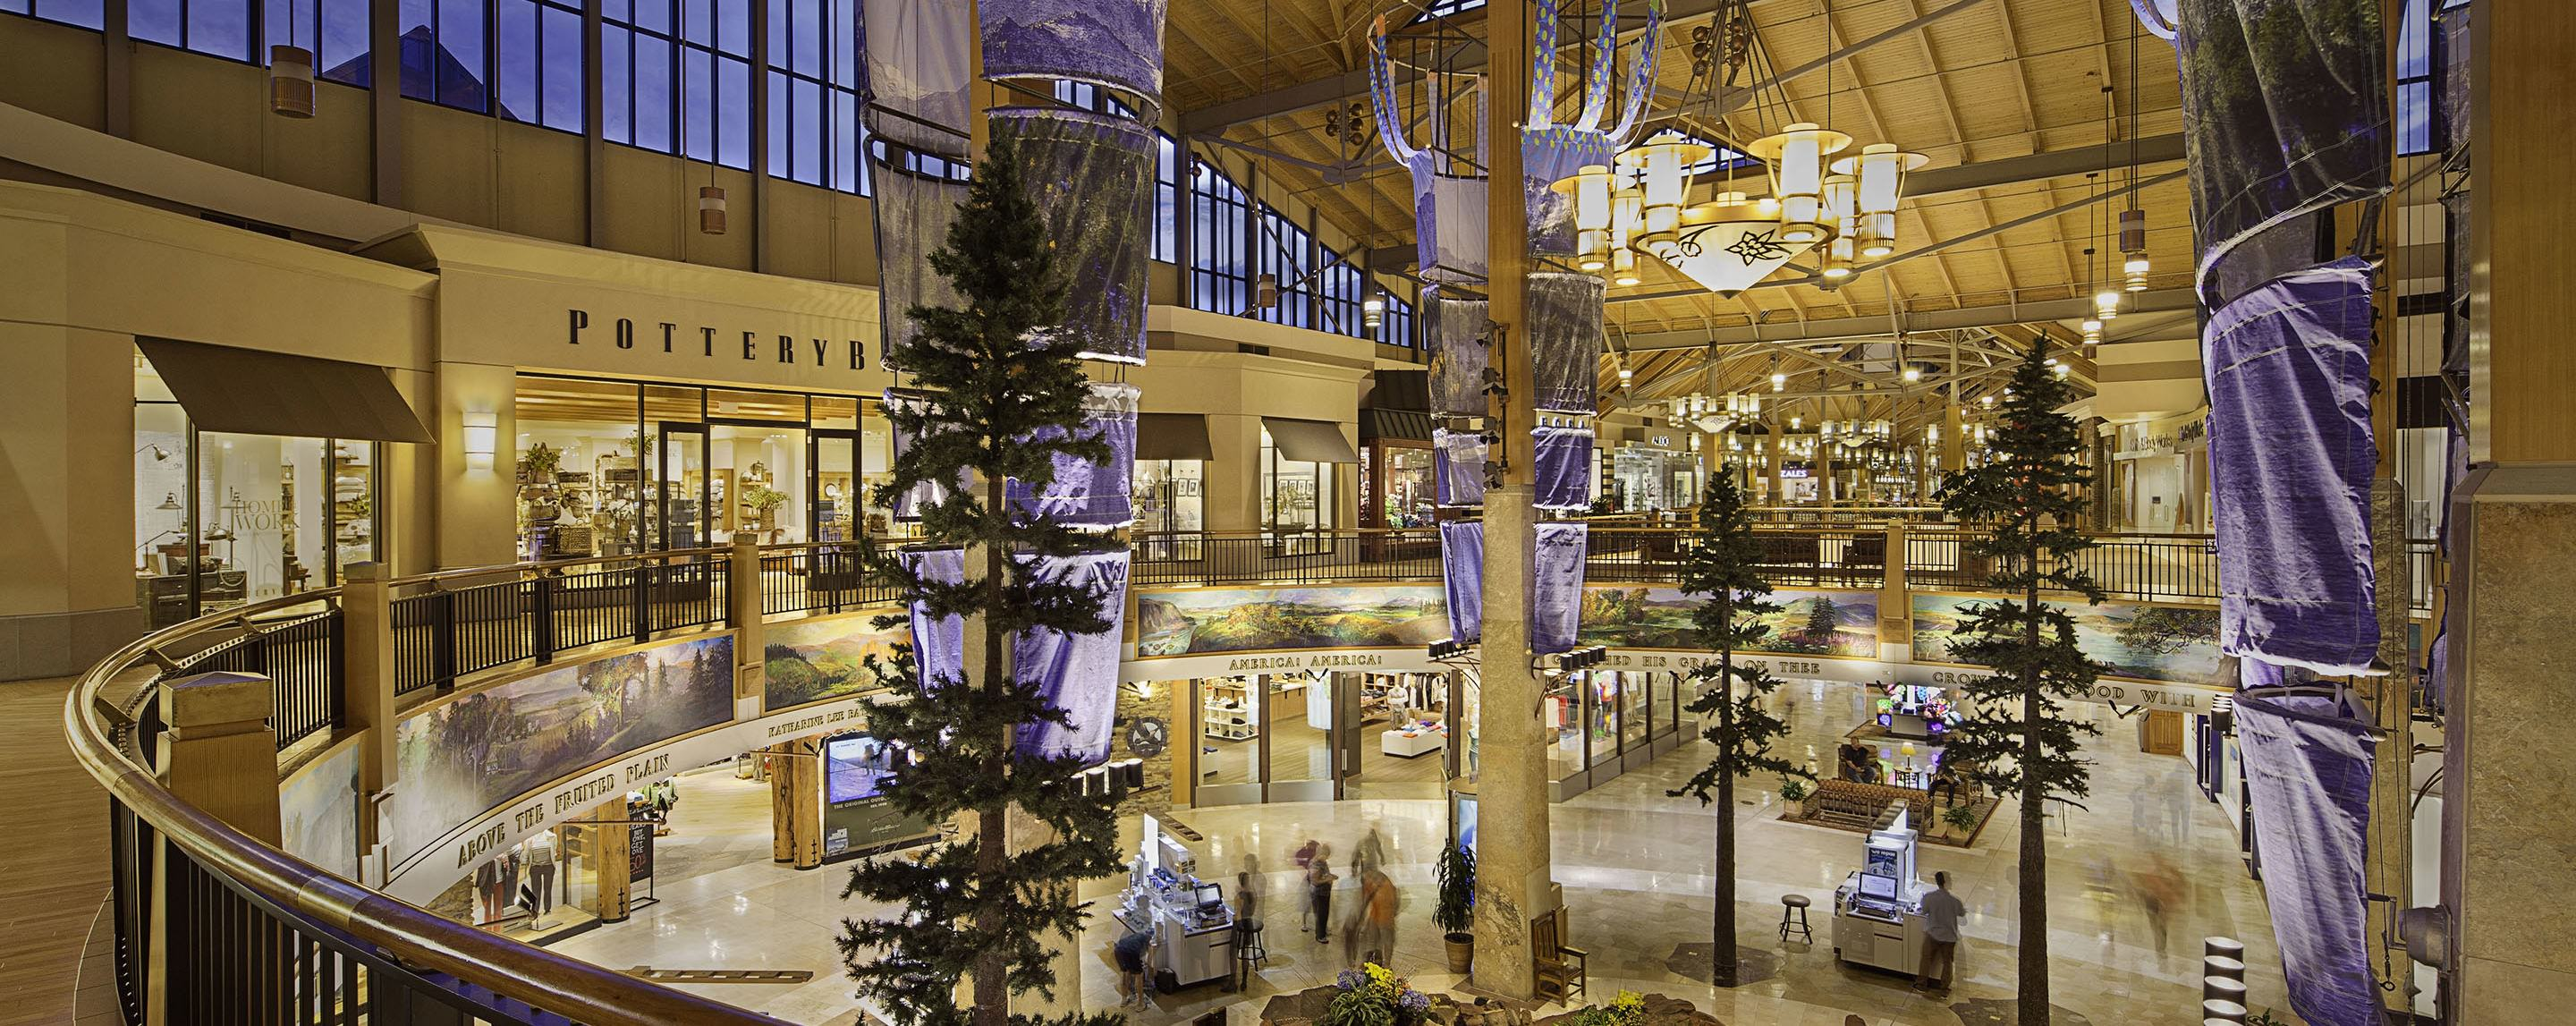 A pine tree display set up inside a mall with a large chandelier and a Pottery Barn on the second floor.